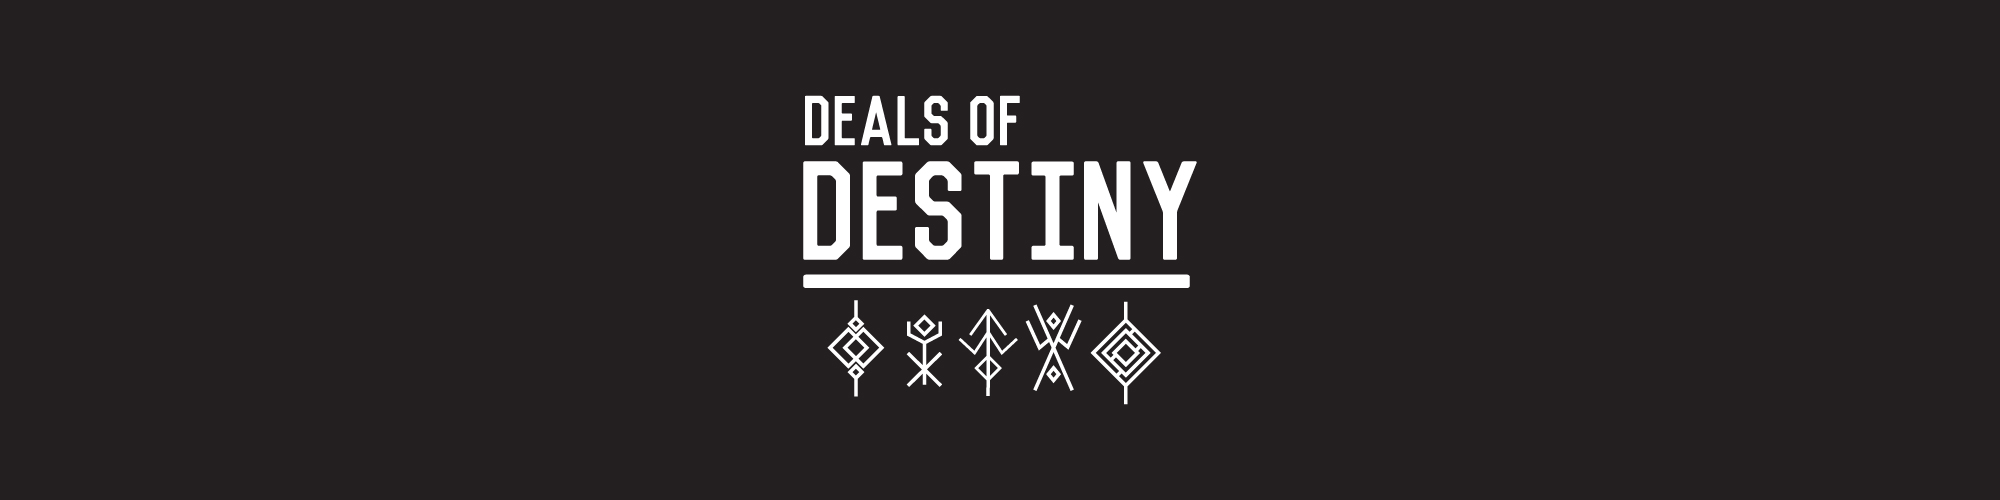 Deals of Destiny